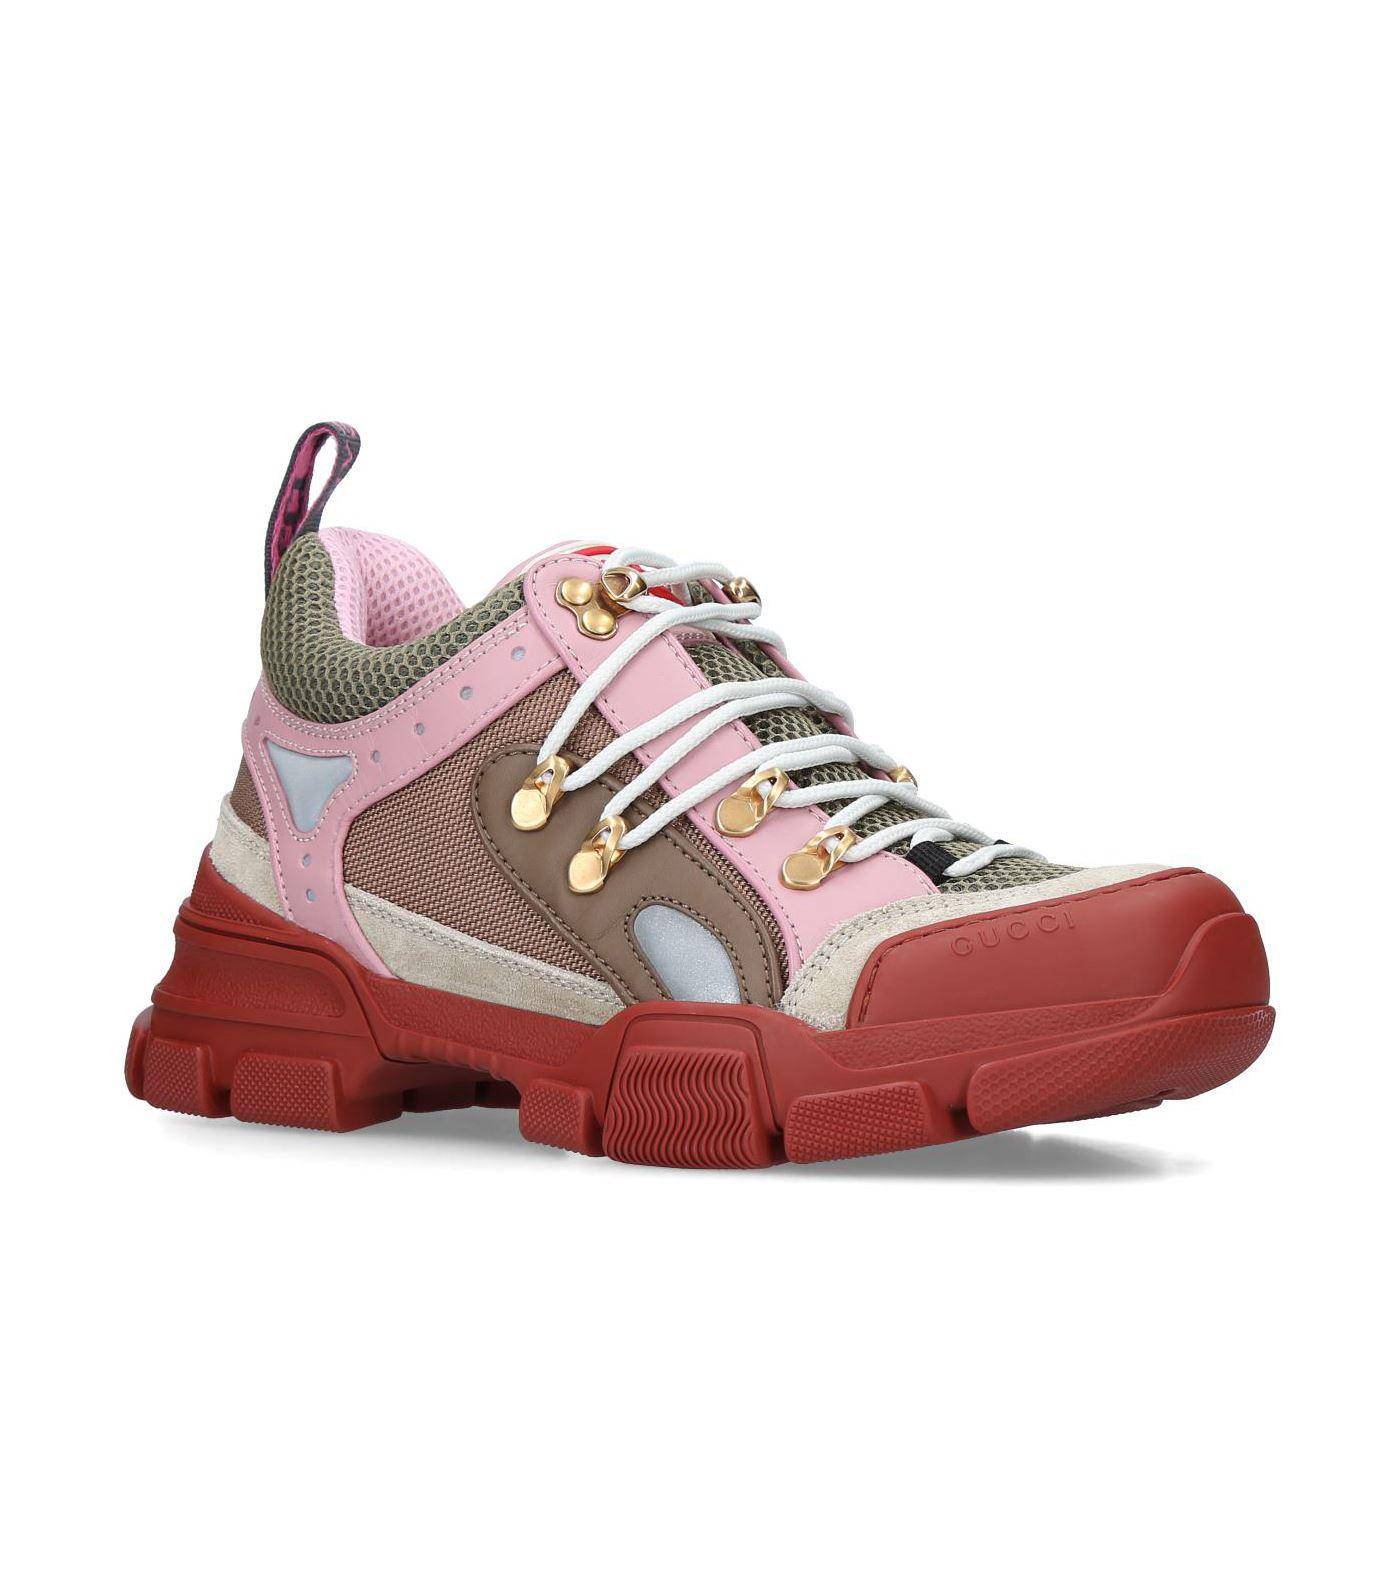 9e058756d086 Gucci Flashtrek Sneakers in Pink - Save 6% - Lyst